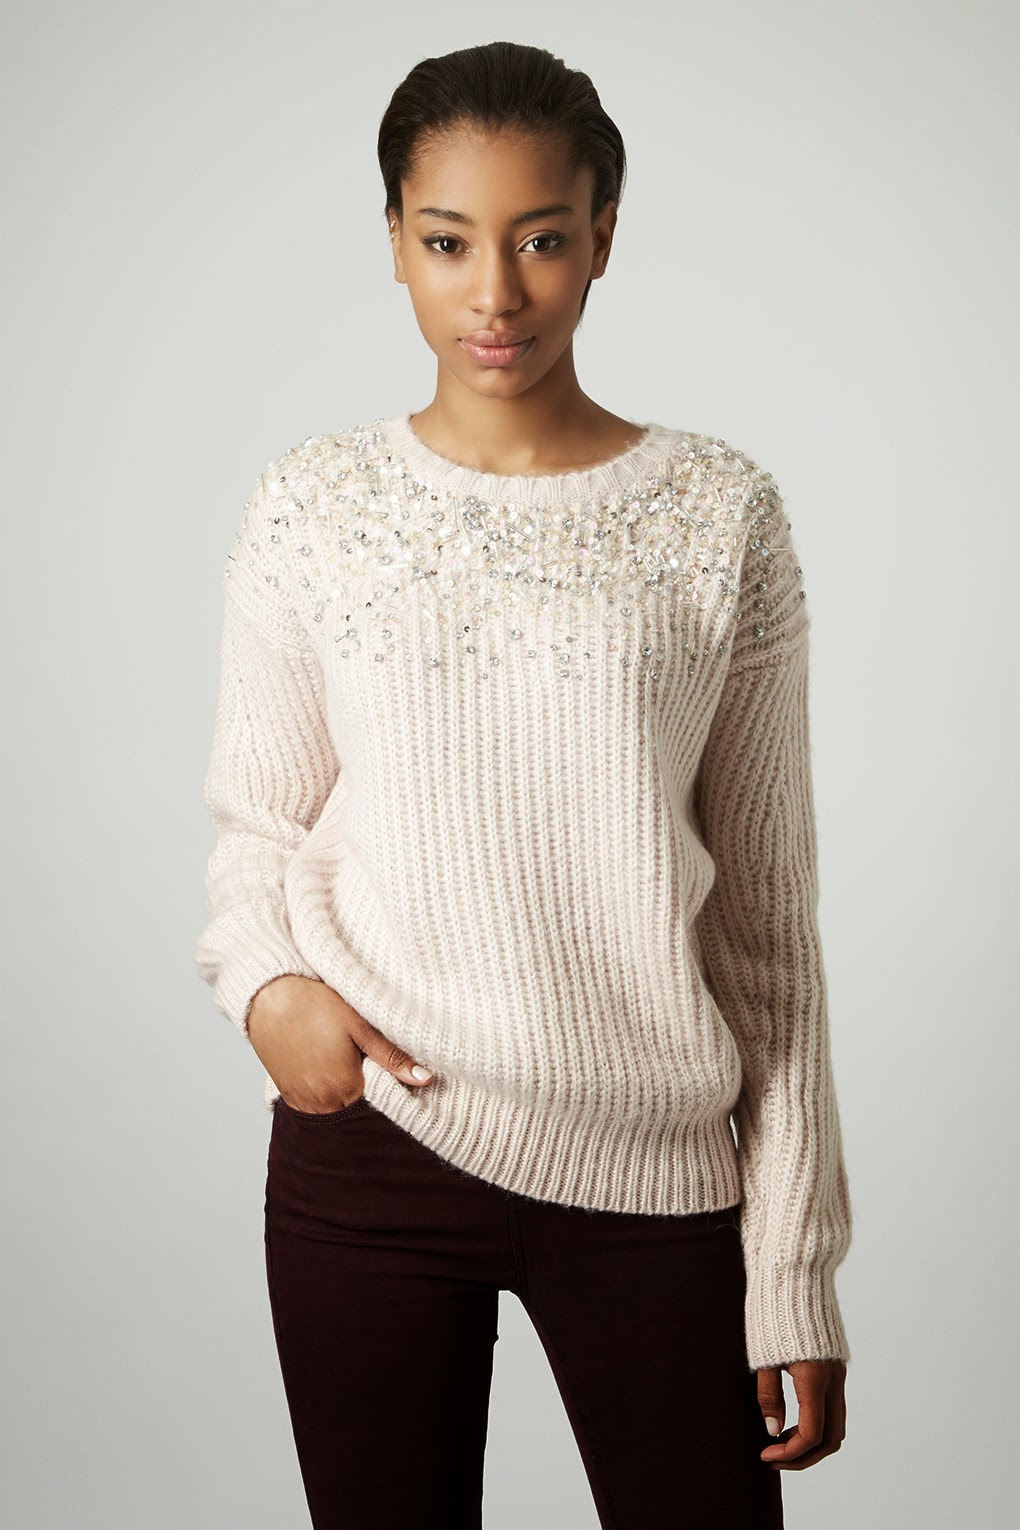 jewelled jumper